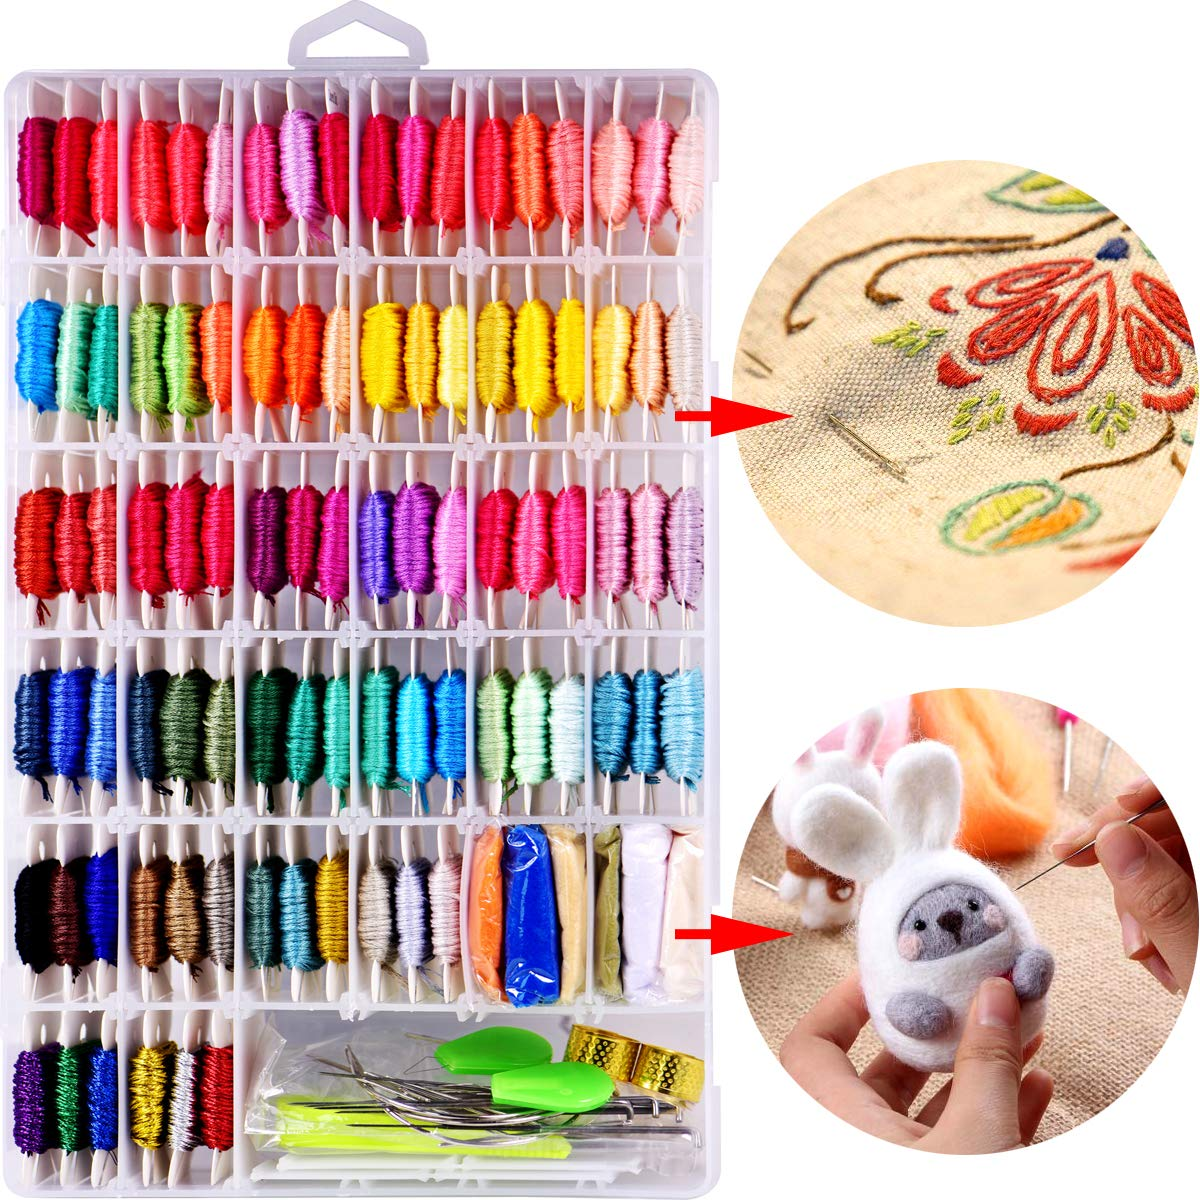 160 Pcs Paper Floss Bobbins for Embroidery Floss Organizer, Cross-Stitch Bobbins Card Thread Holder,Wrap and Store Floss,Craft DIY Sewing Storage,with Free Set of 6 Needles and 1 Threader(White